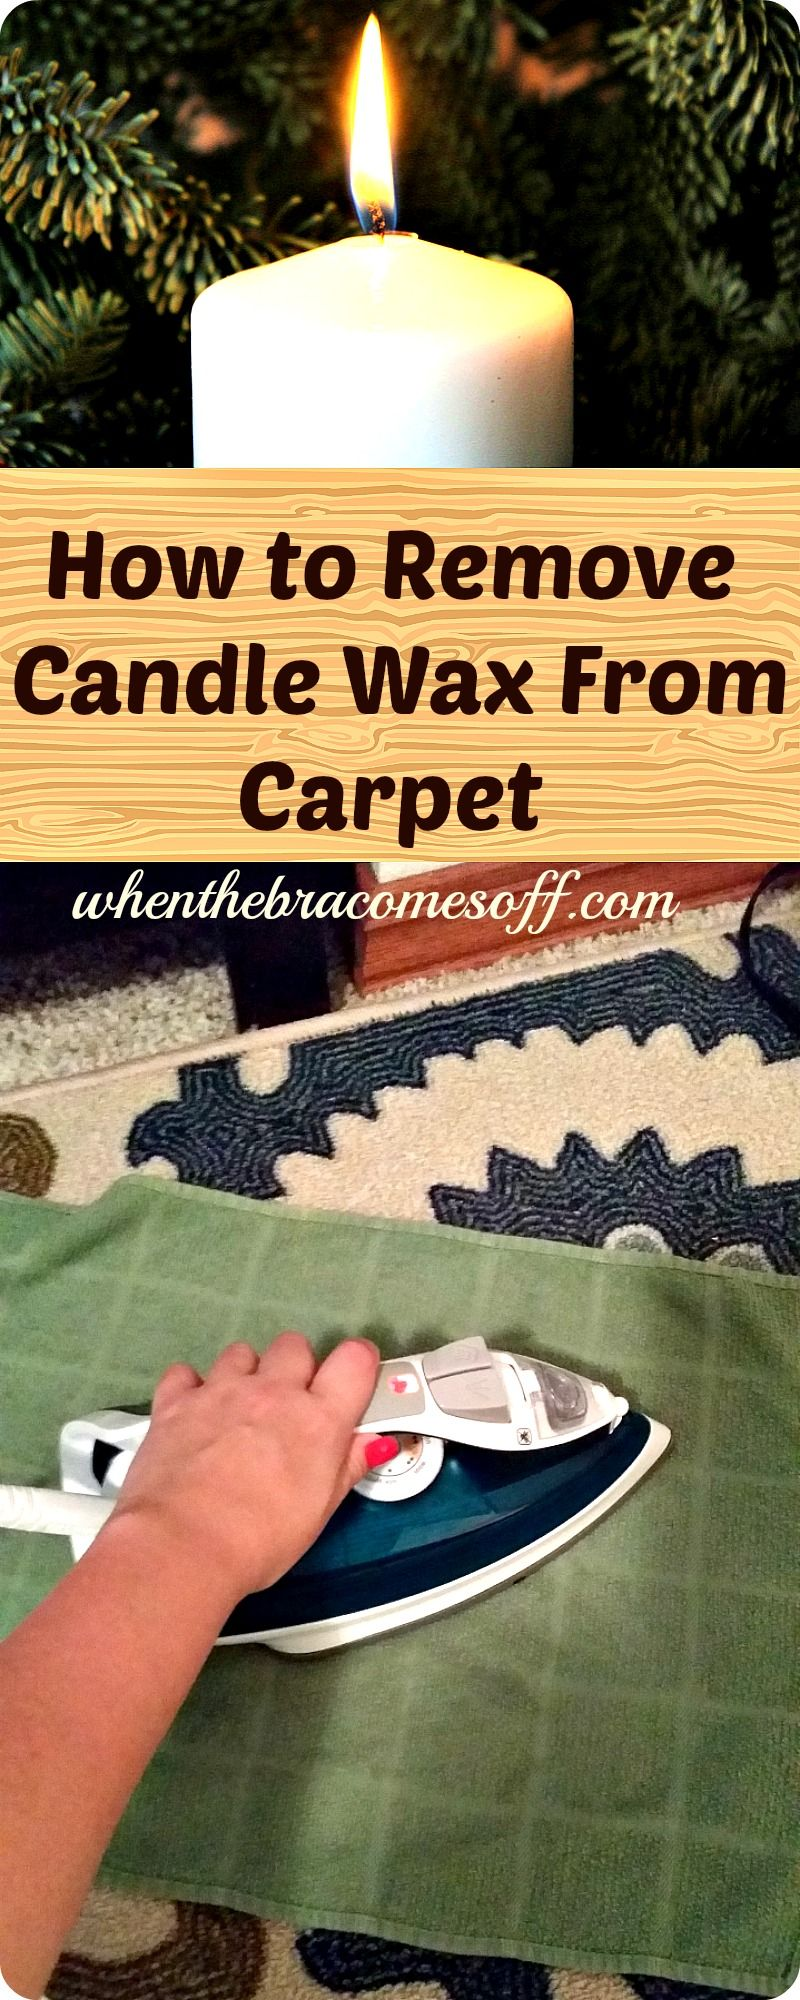 How To Remove Candle Wax From Carpet Home Tips Tricks